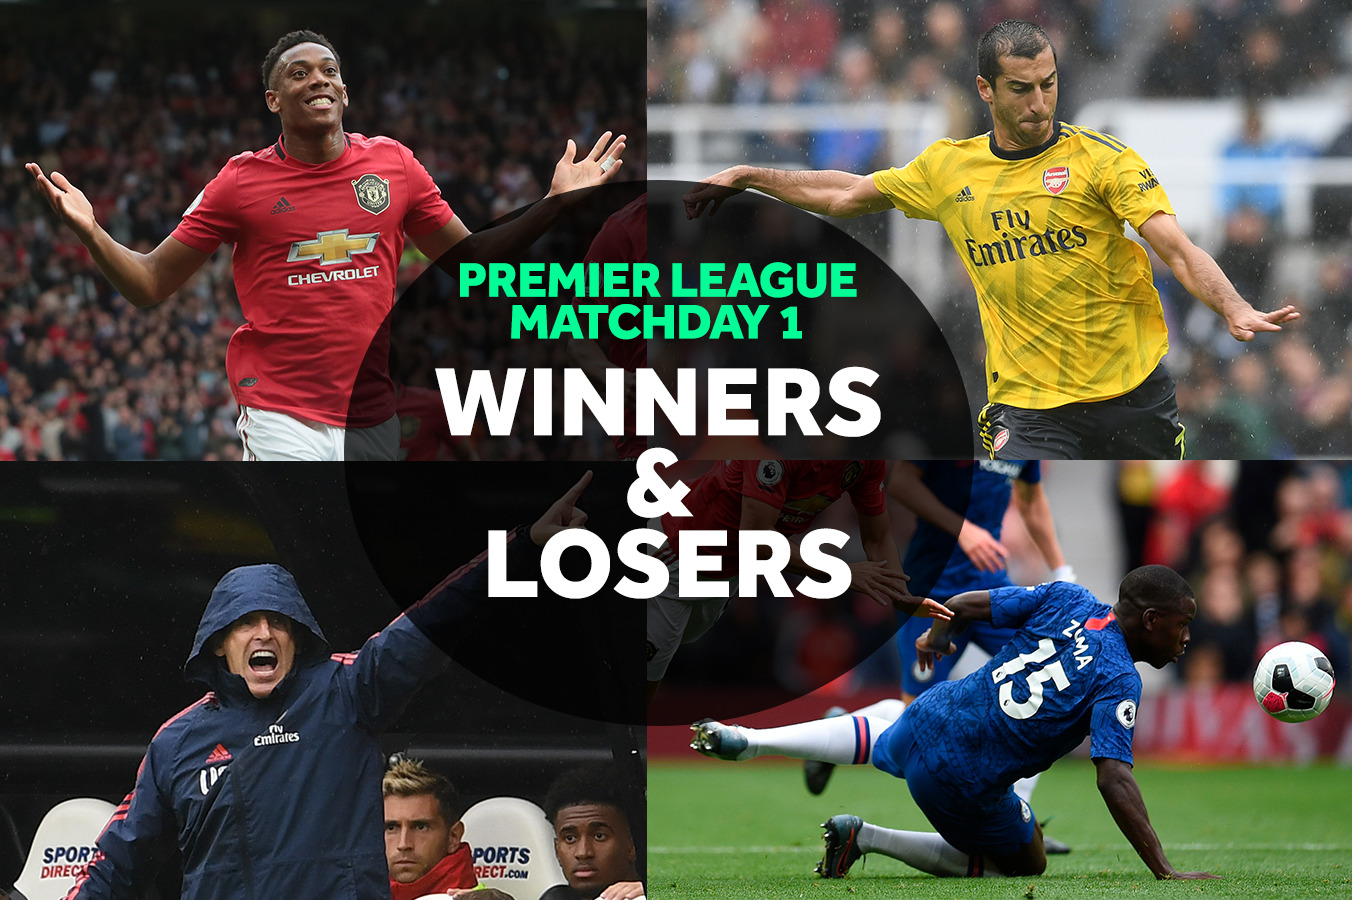 EPL Predictions: Picks, Top Players for Week 2 Premier League